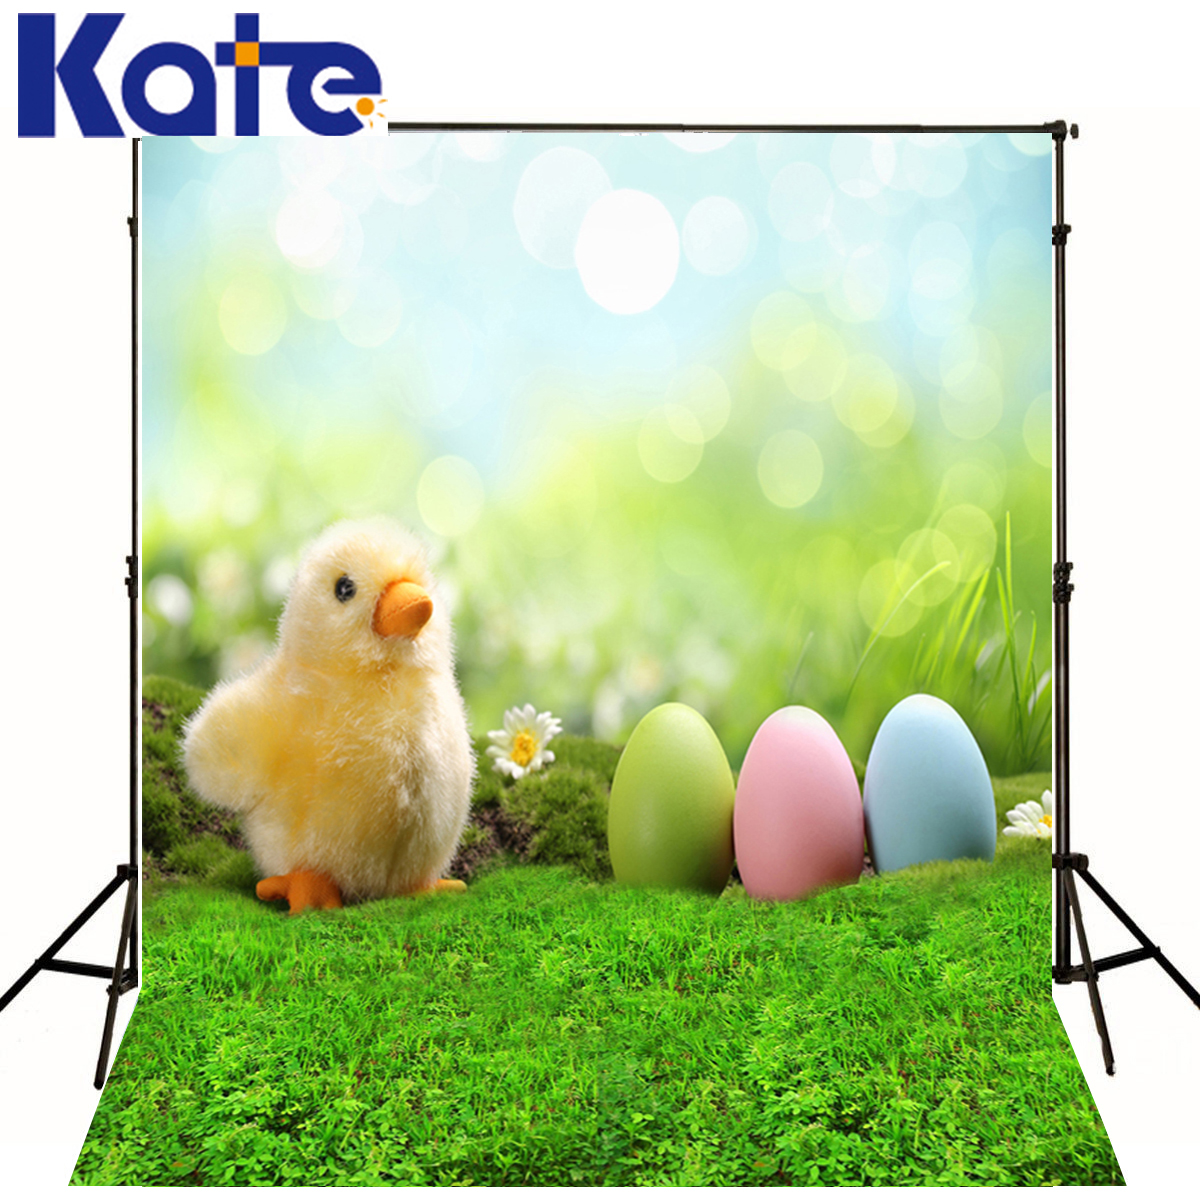 Family Background Color Eggs Green Grass Photography Baby Backdrop Blue Sky Sunshine Chick Digital Studio Background blue sky чаша северный олень